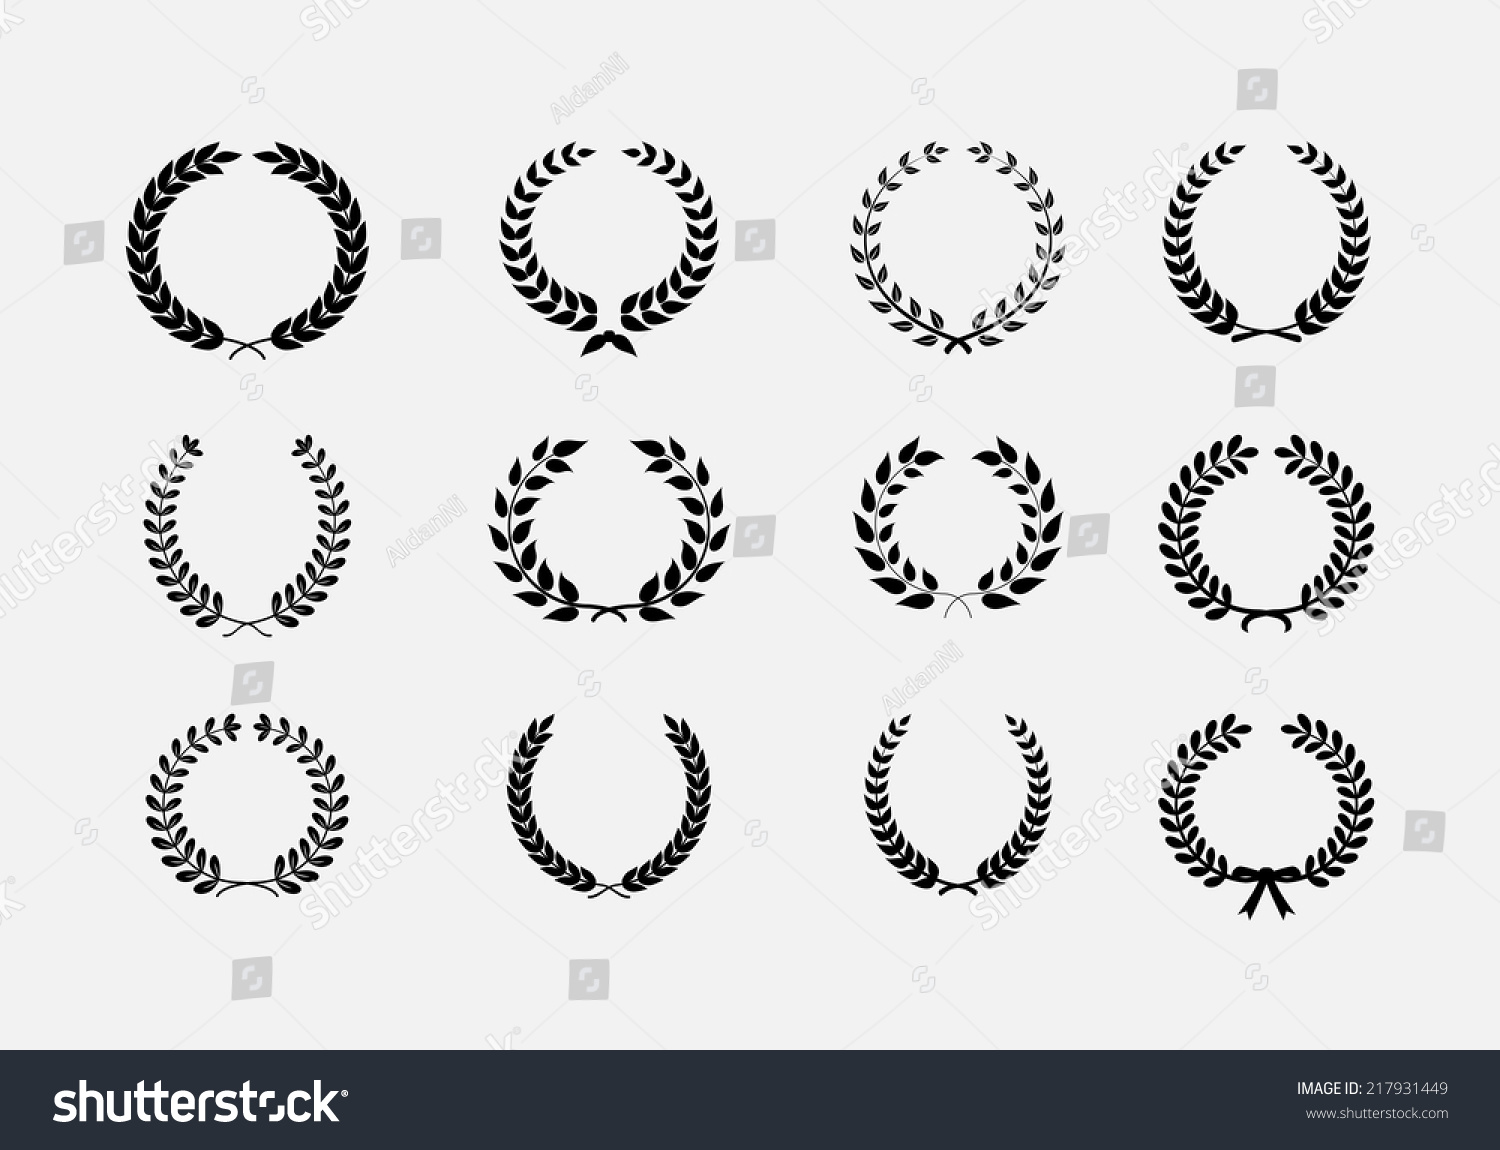 Of Wreaths Set Wreaths Wheat Circular Laurel Heraldry Stock Vector 217931449